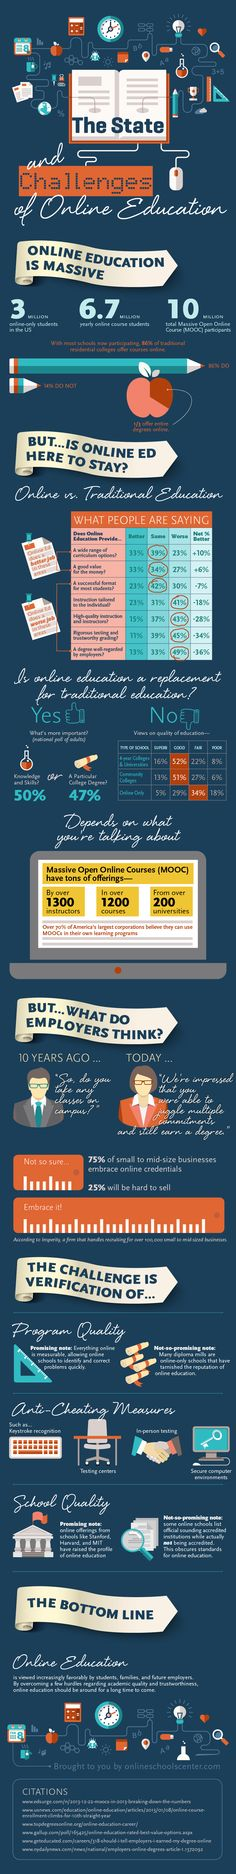 The State and Challenges of Online Education